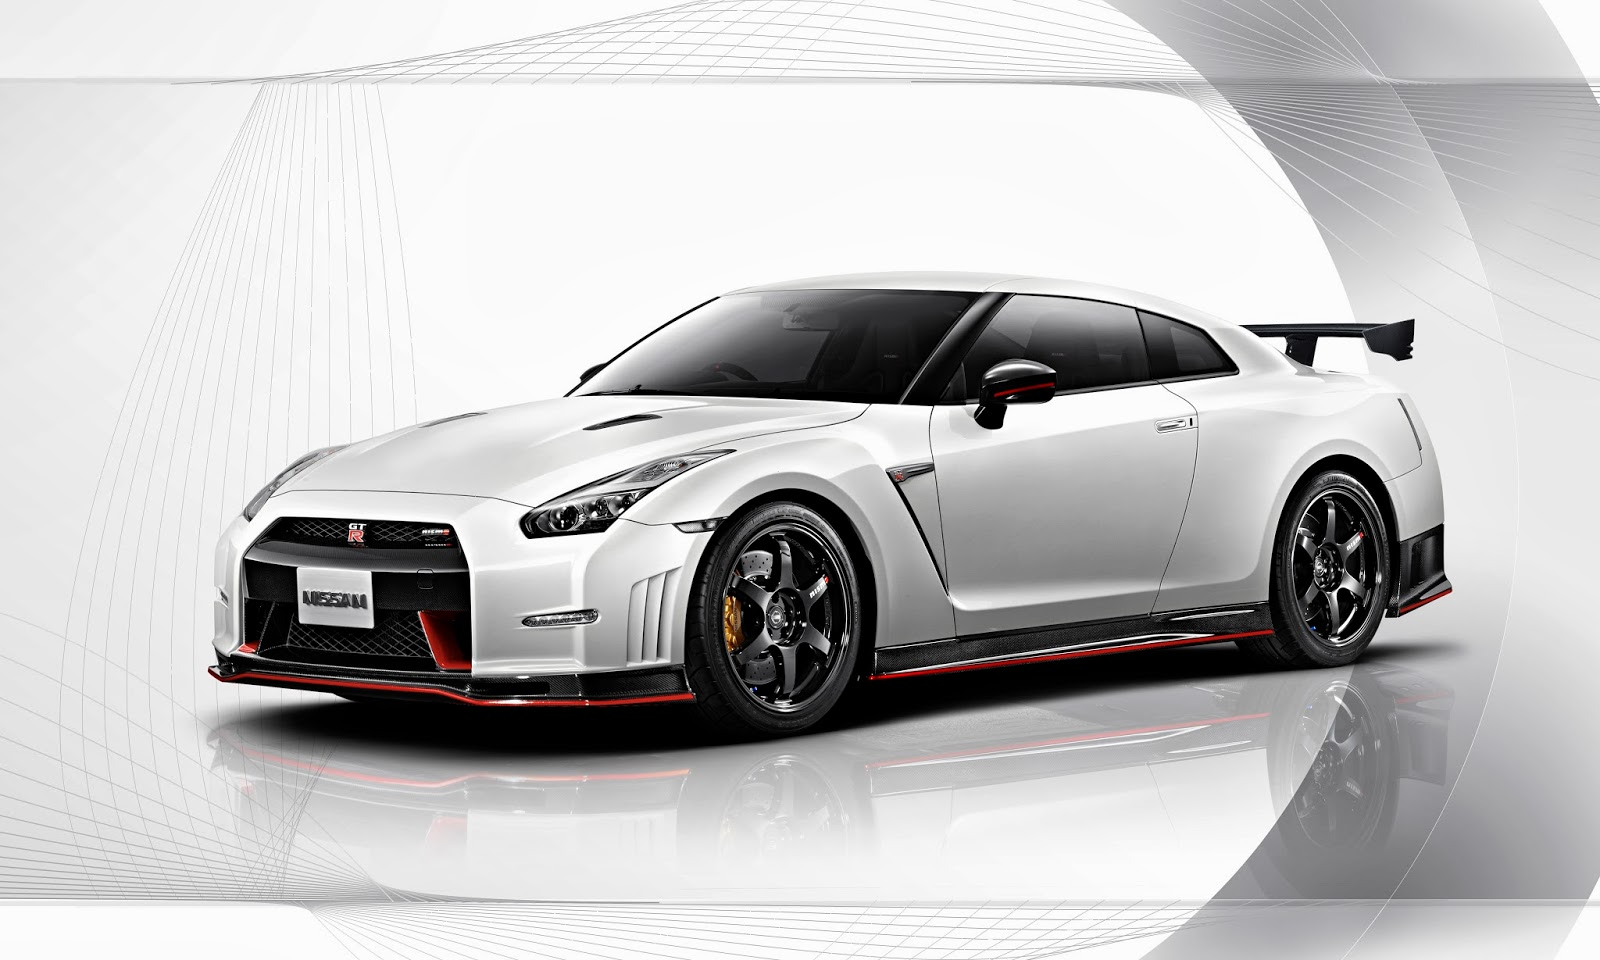 2015 nismo nissan gt r pricing announced. Black Bedroom Furniture Sets. Home Design Ideas